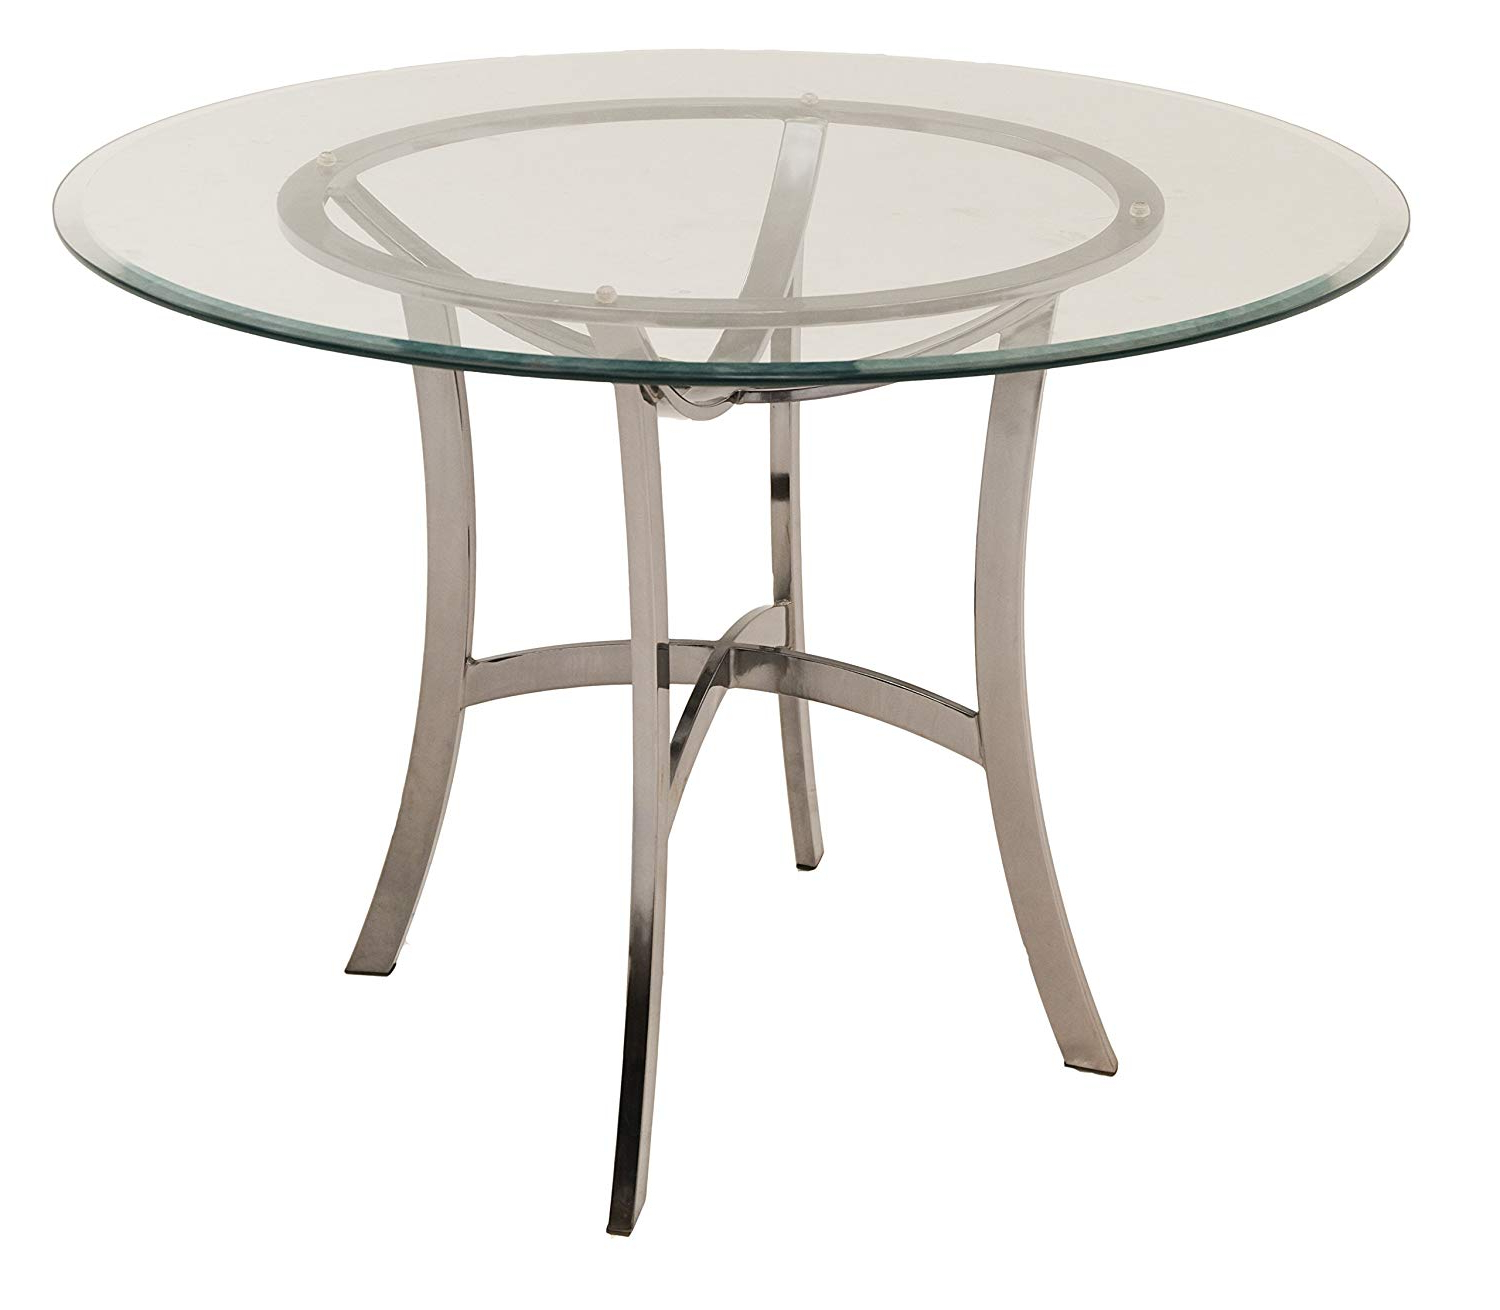 Preferred Amazon: Impacterra Palisades Dining Table, Black Nickel Regarding Round Glass Top Dining Tables (View 25 of 30)